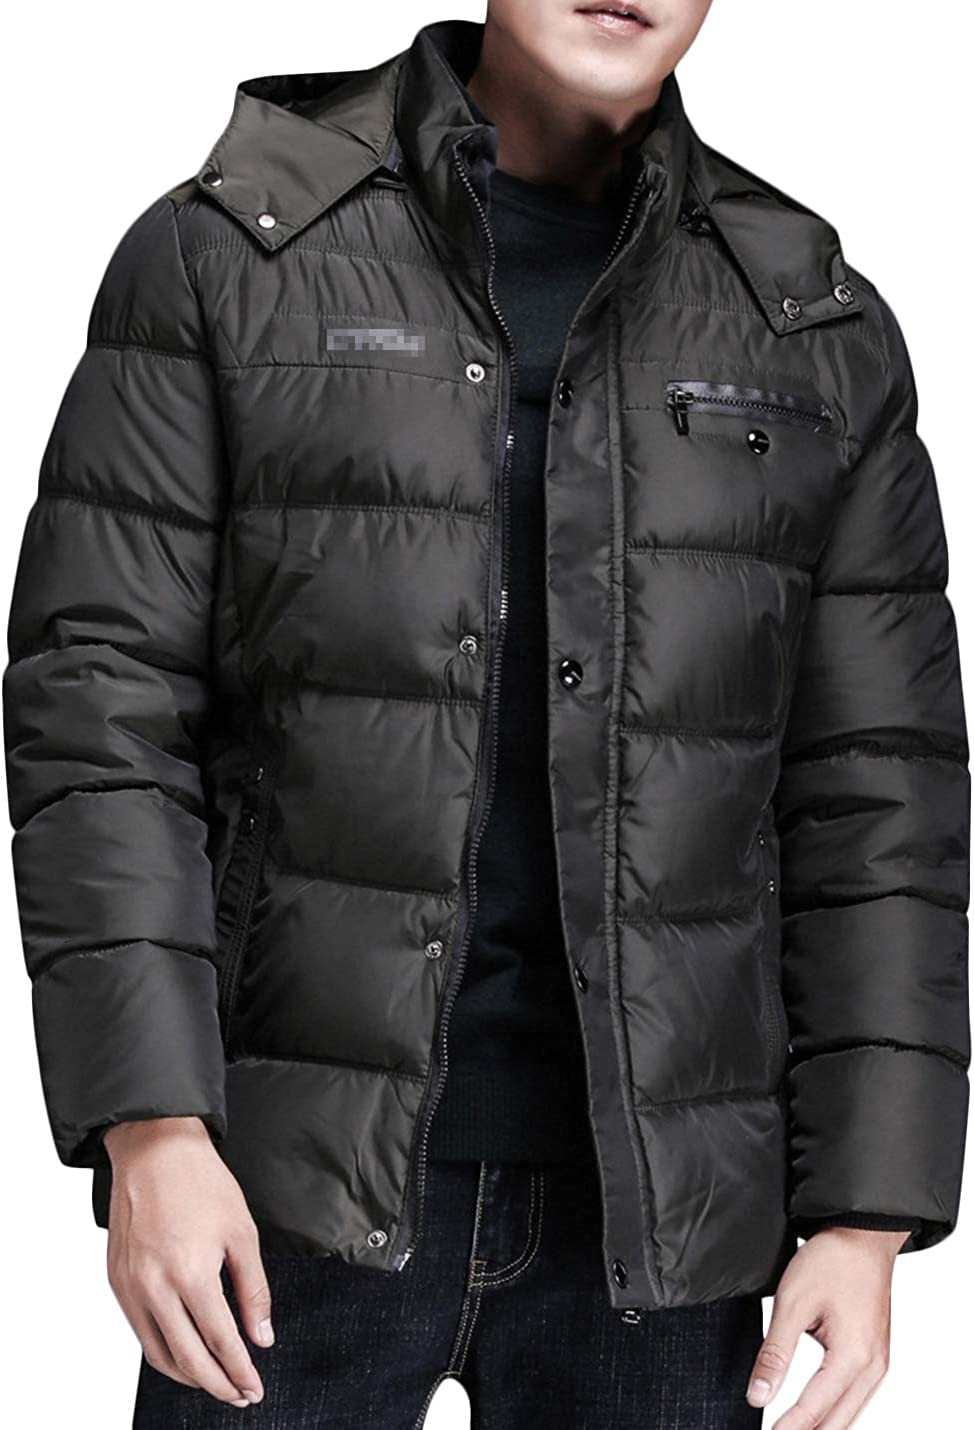 UANEO Men's Winter Casual Button Zip Puffer Coat Jacket with Detachable Hood (Army Green, Large)